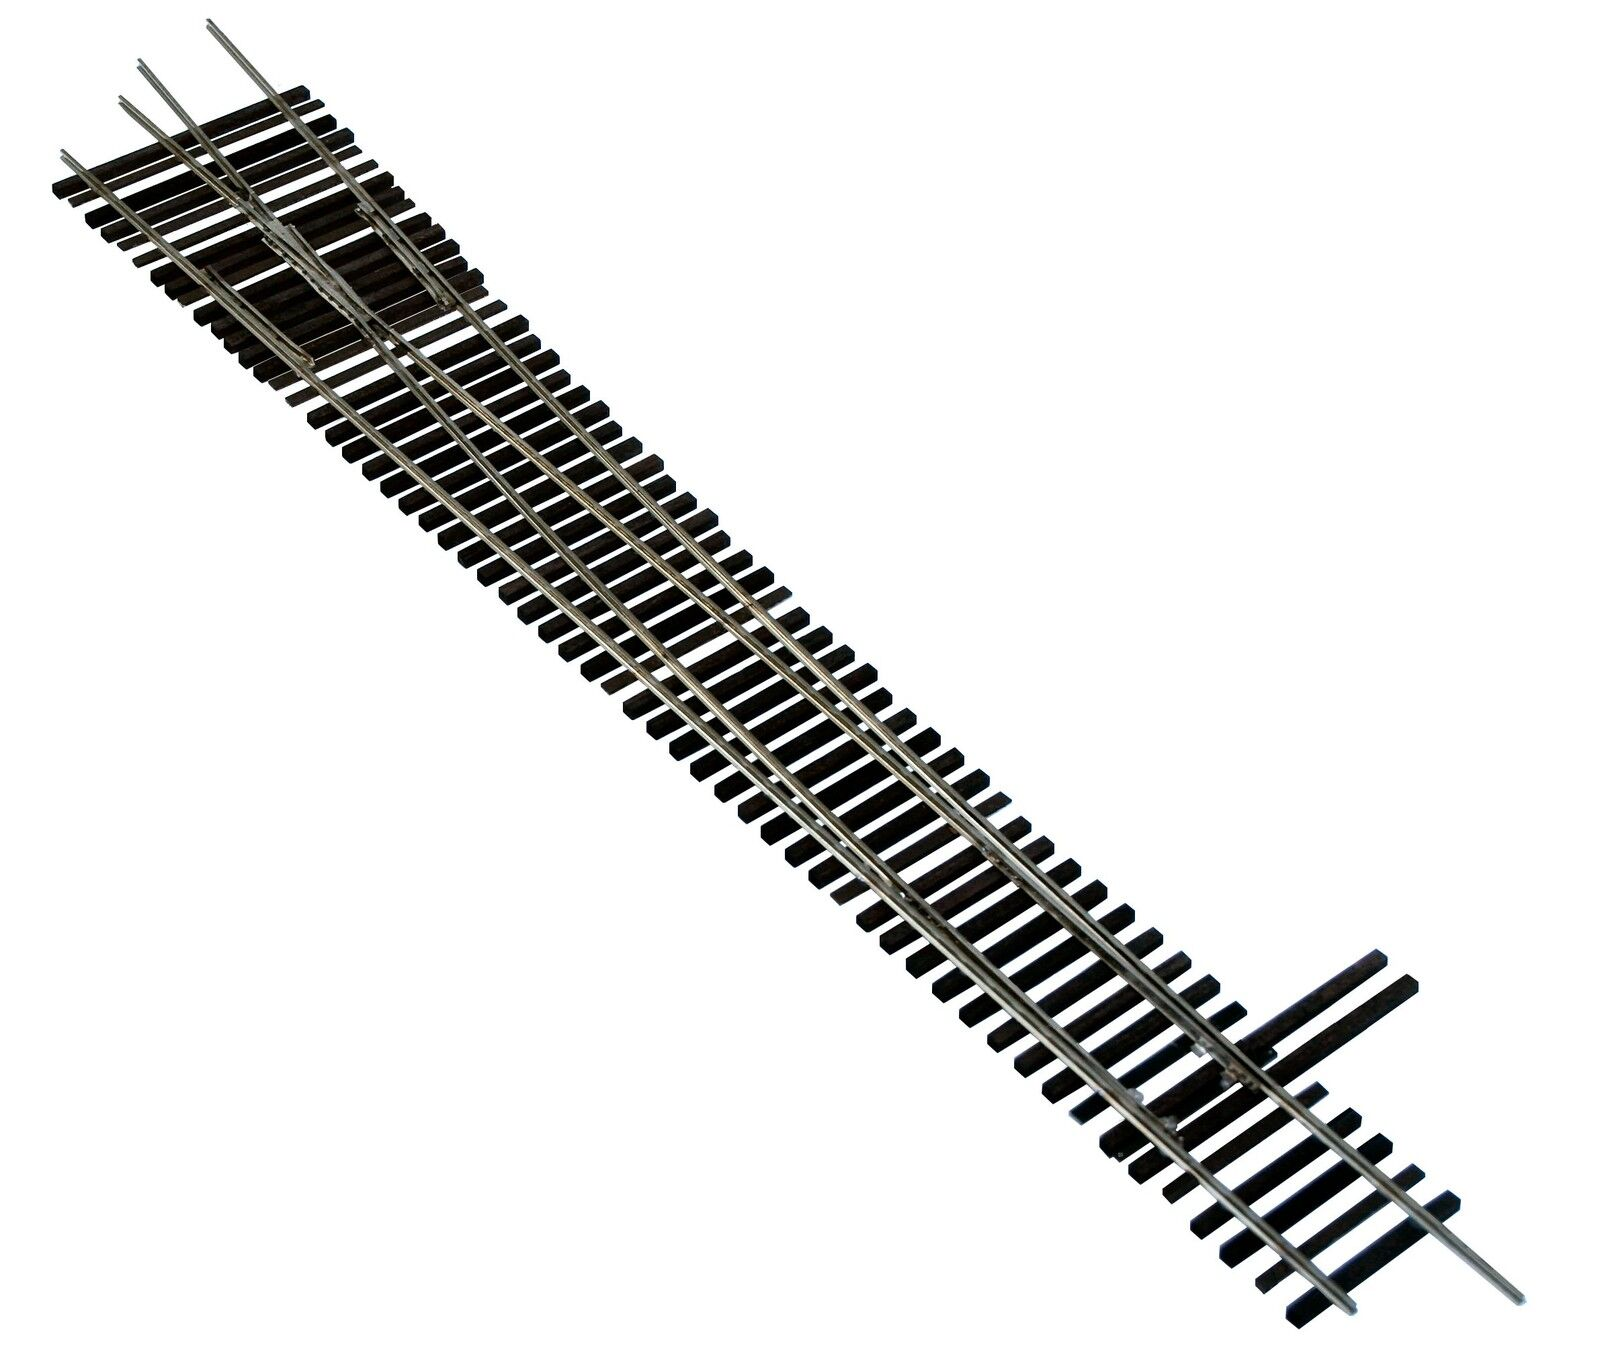 Oscale Turnouts, Inc. Right Hand Turnout,  2-Rail, Code 125, Mounted on Ties